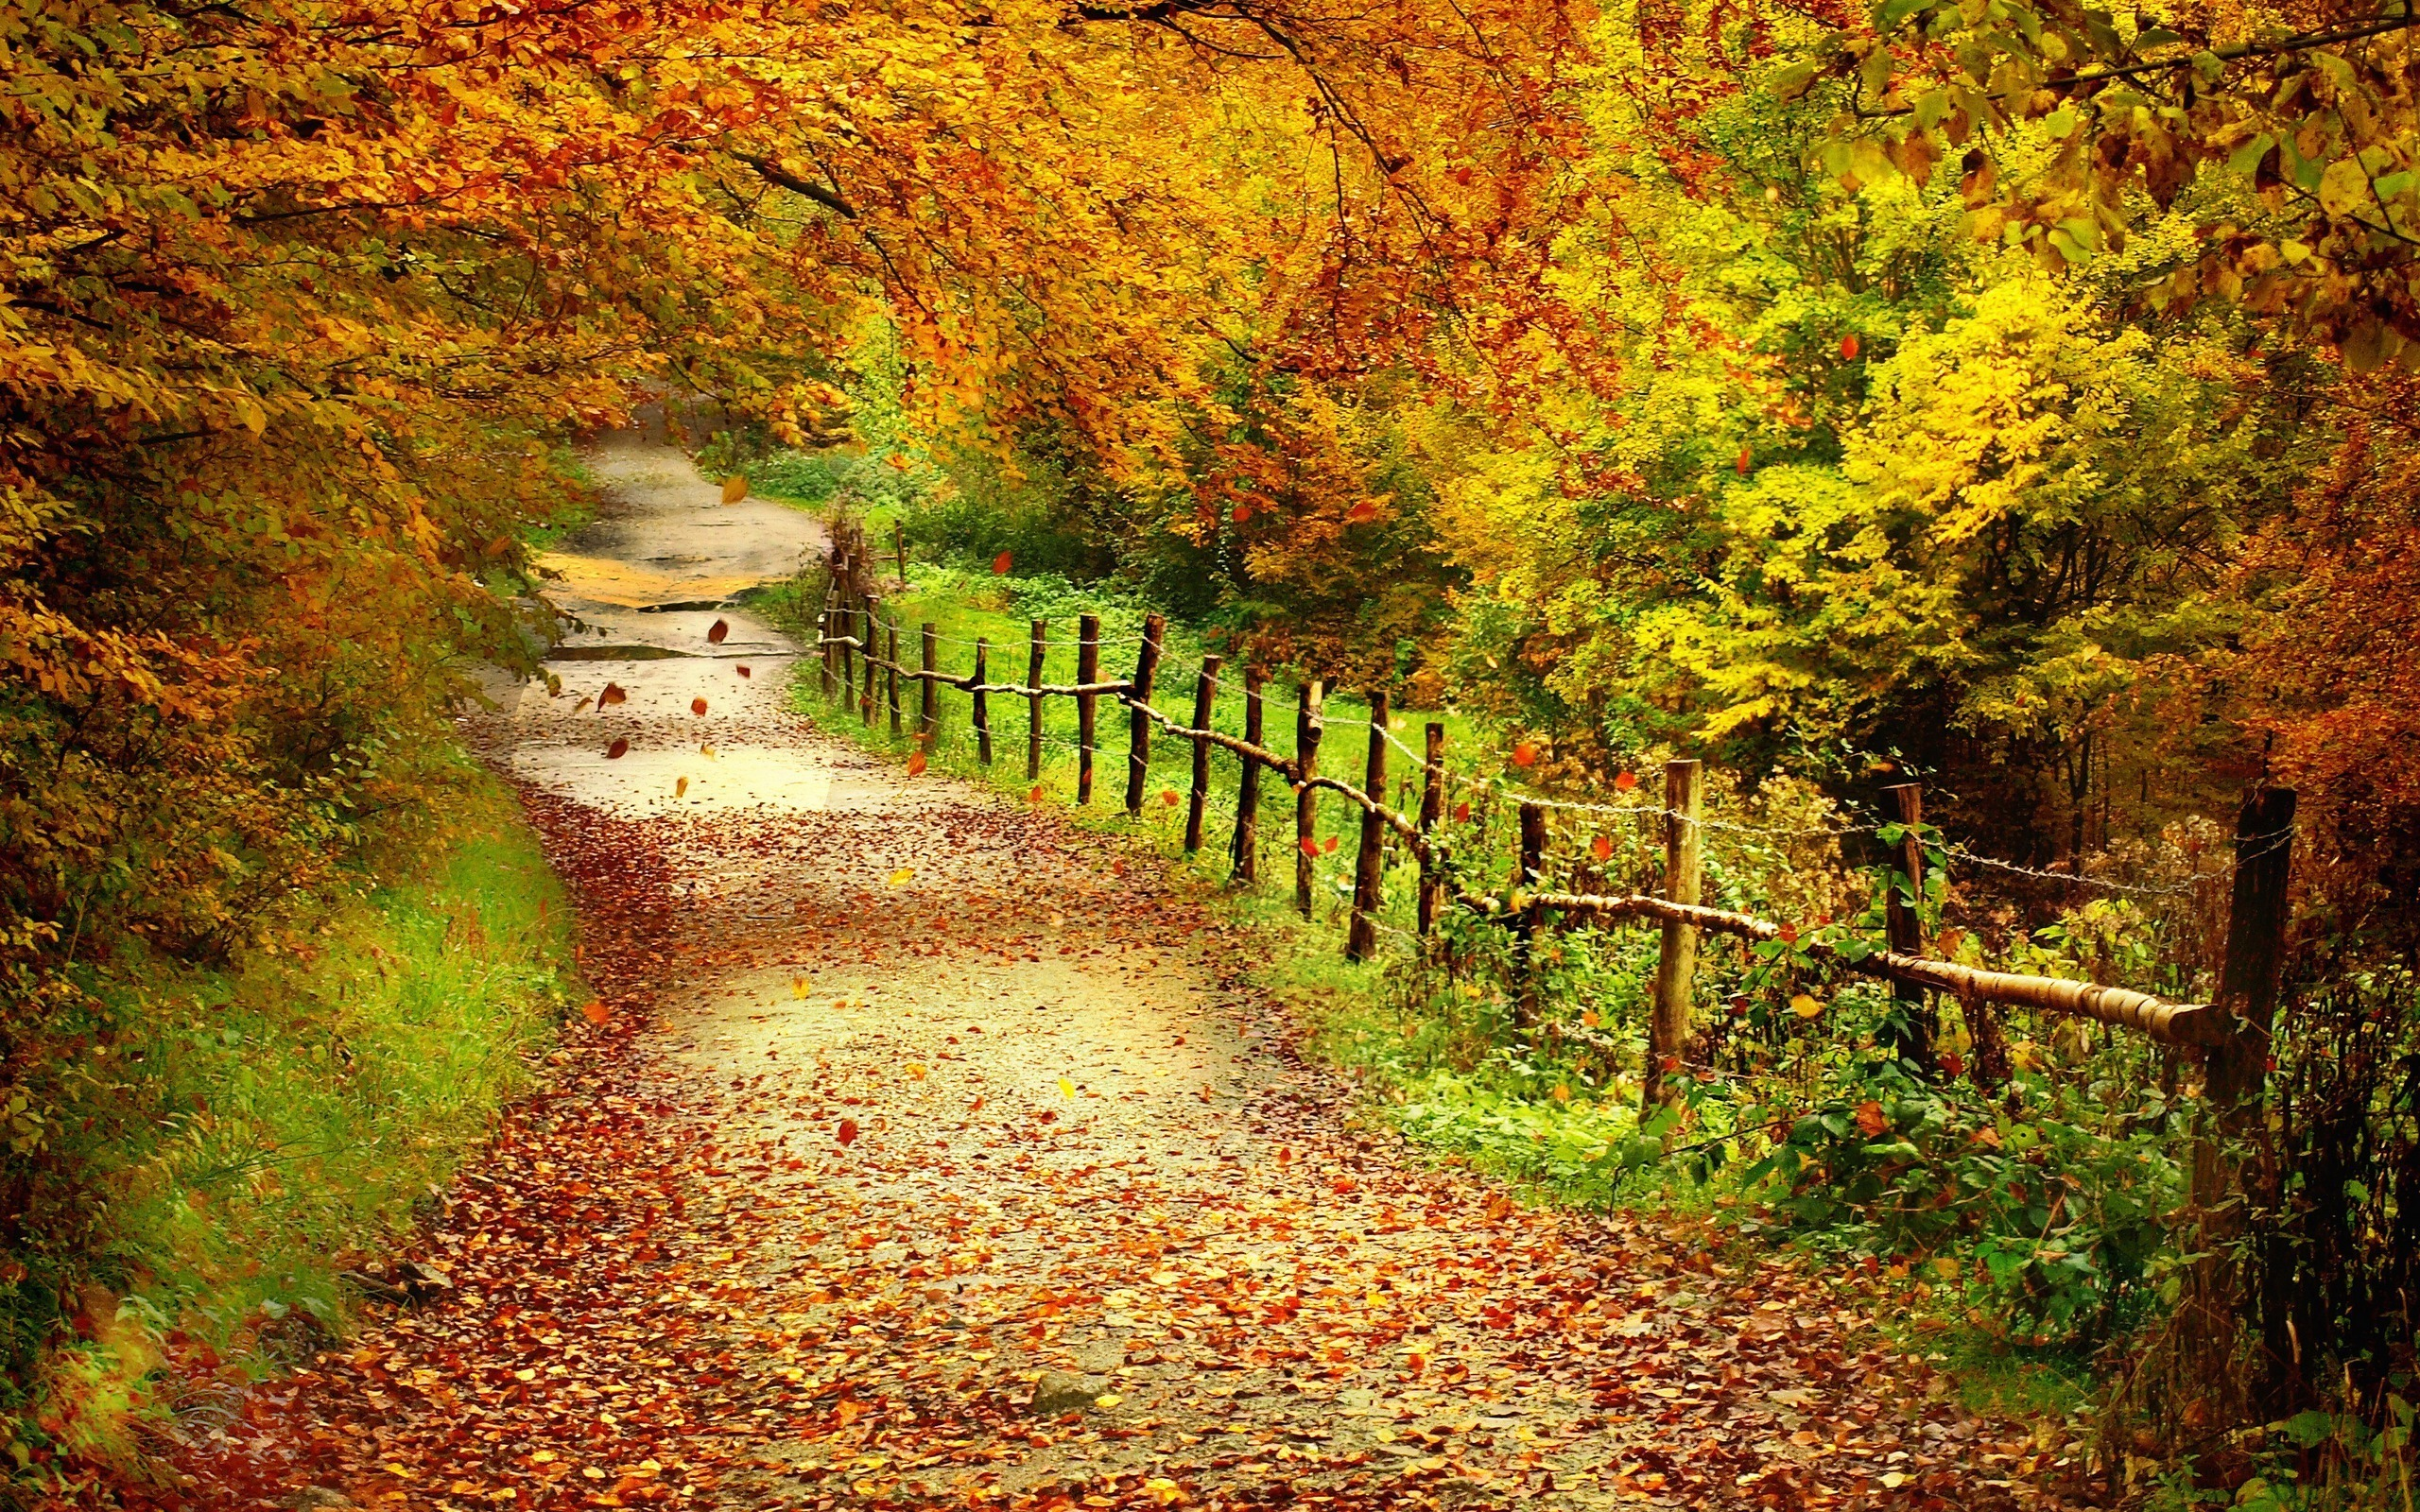 15641 download wallpaper Landscape, Roads, Autumn, Leaves screensavers and pictures for free